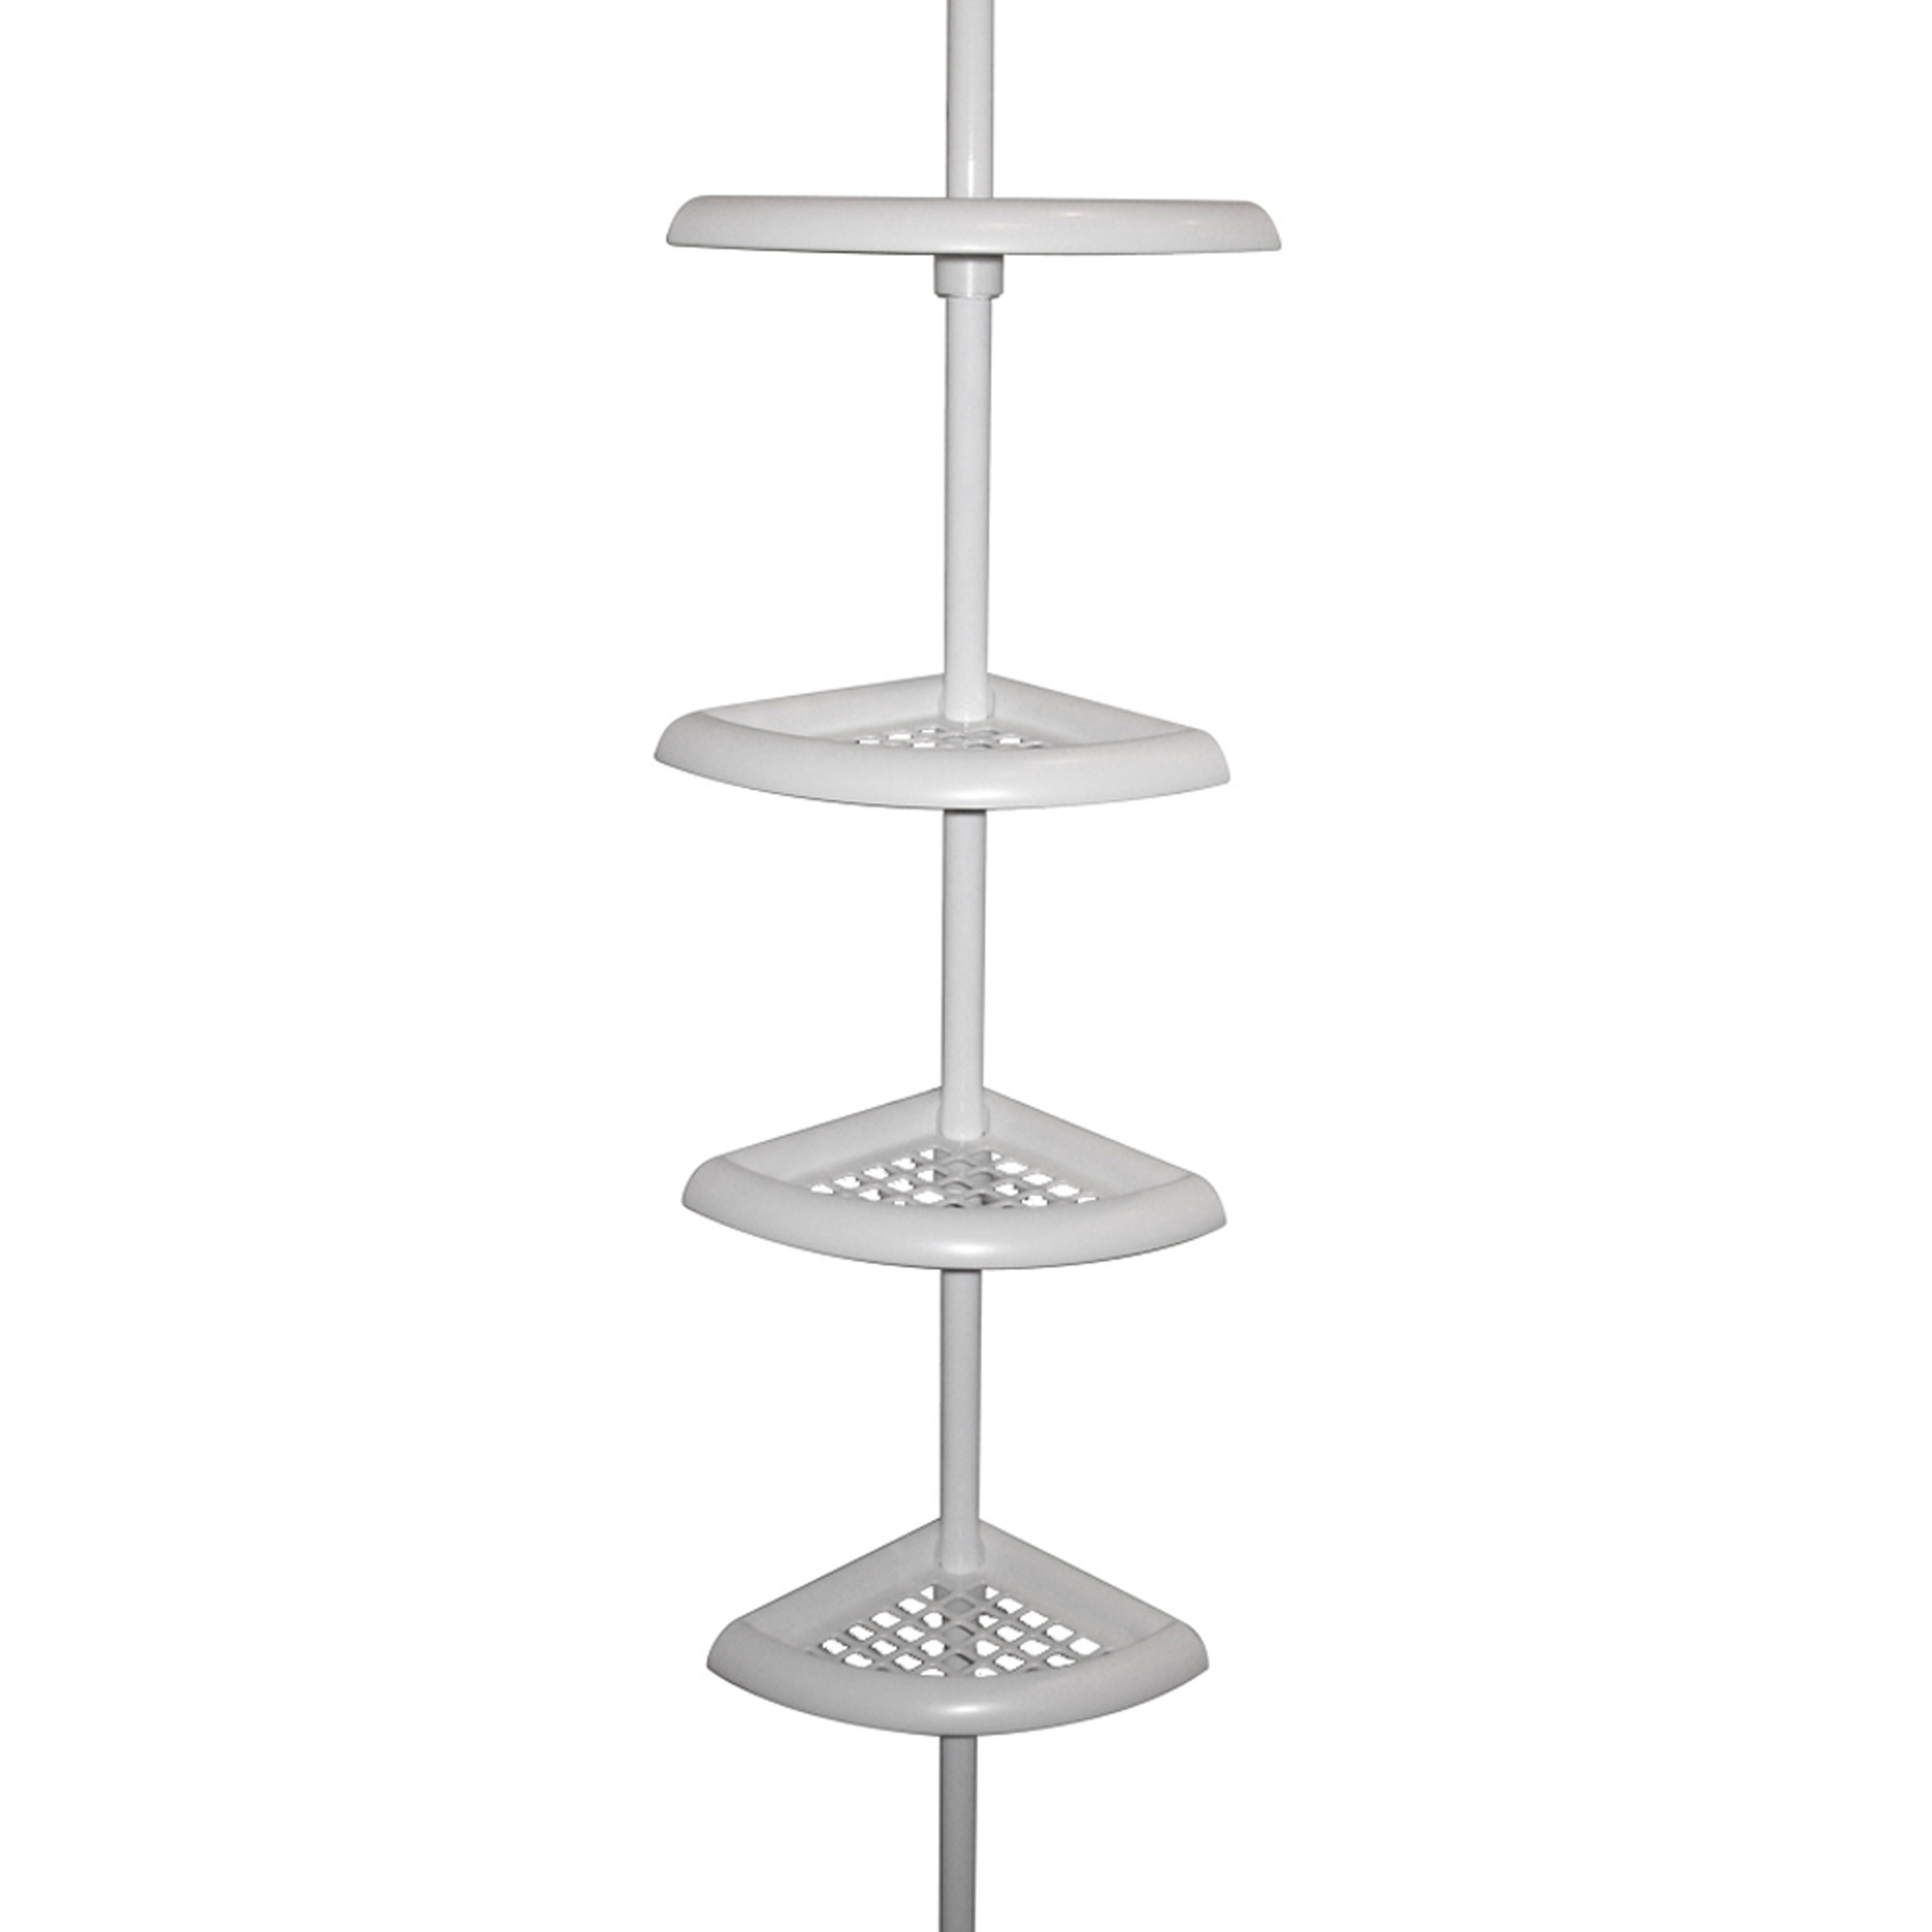 Tension Pole Corner Shower Caddy zenna home 2104w, bathtub and shower pole caddy, white - walmart